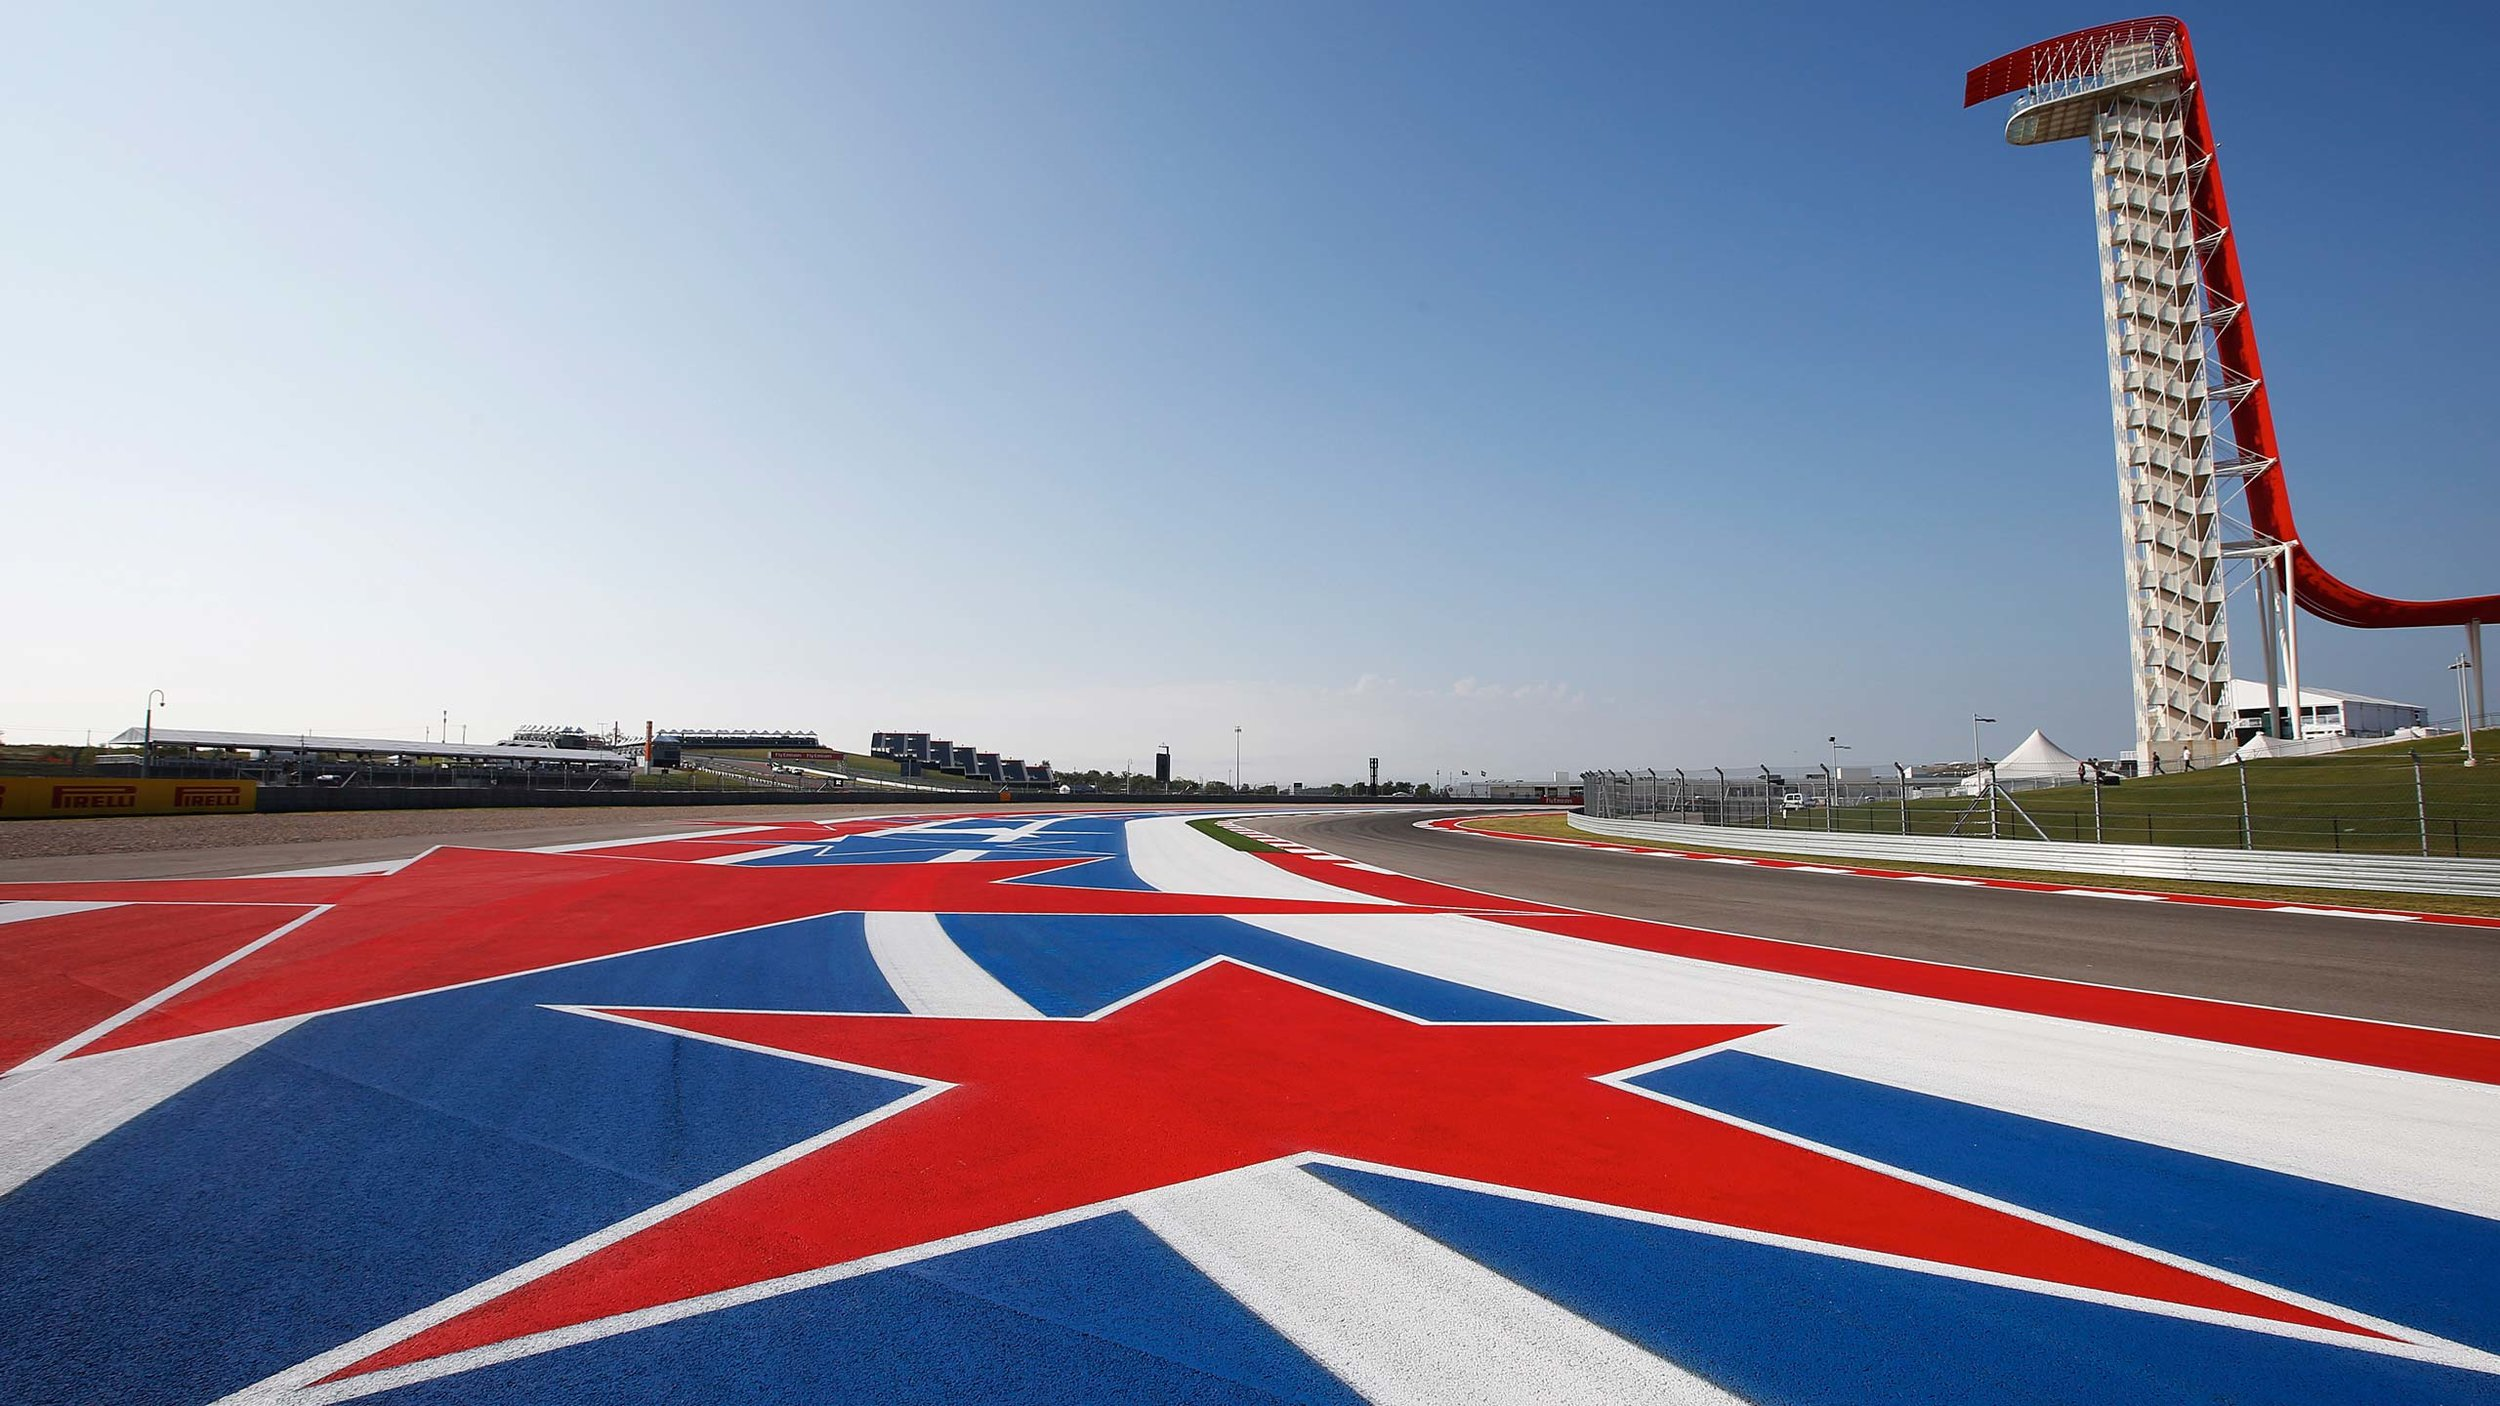 Shot of the Circuit of the Americas race track.